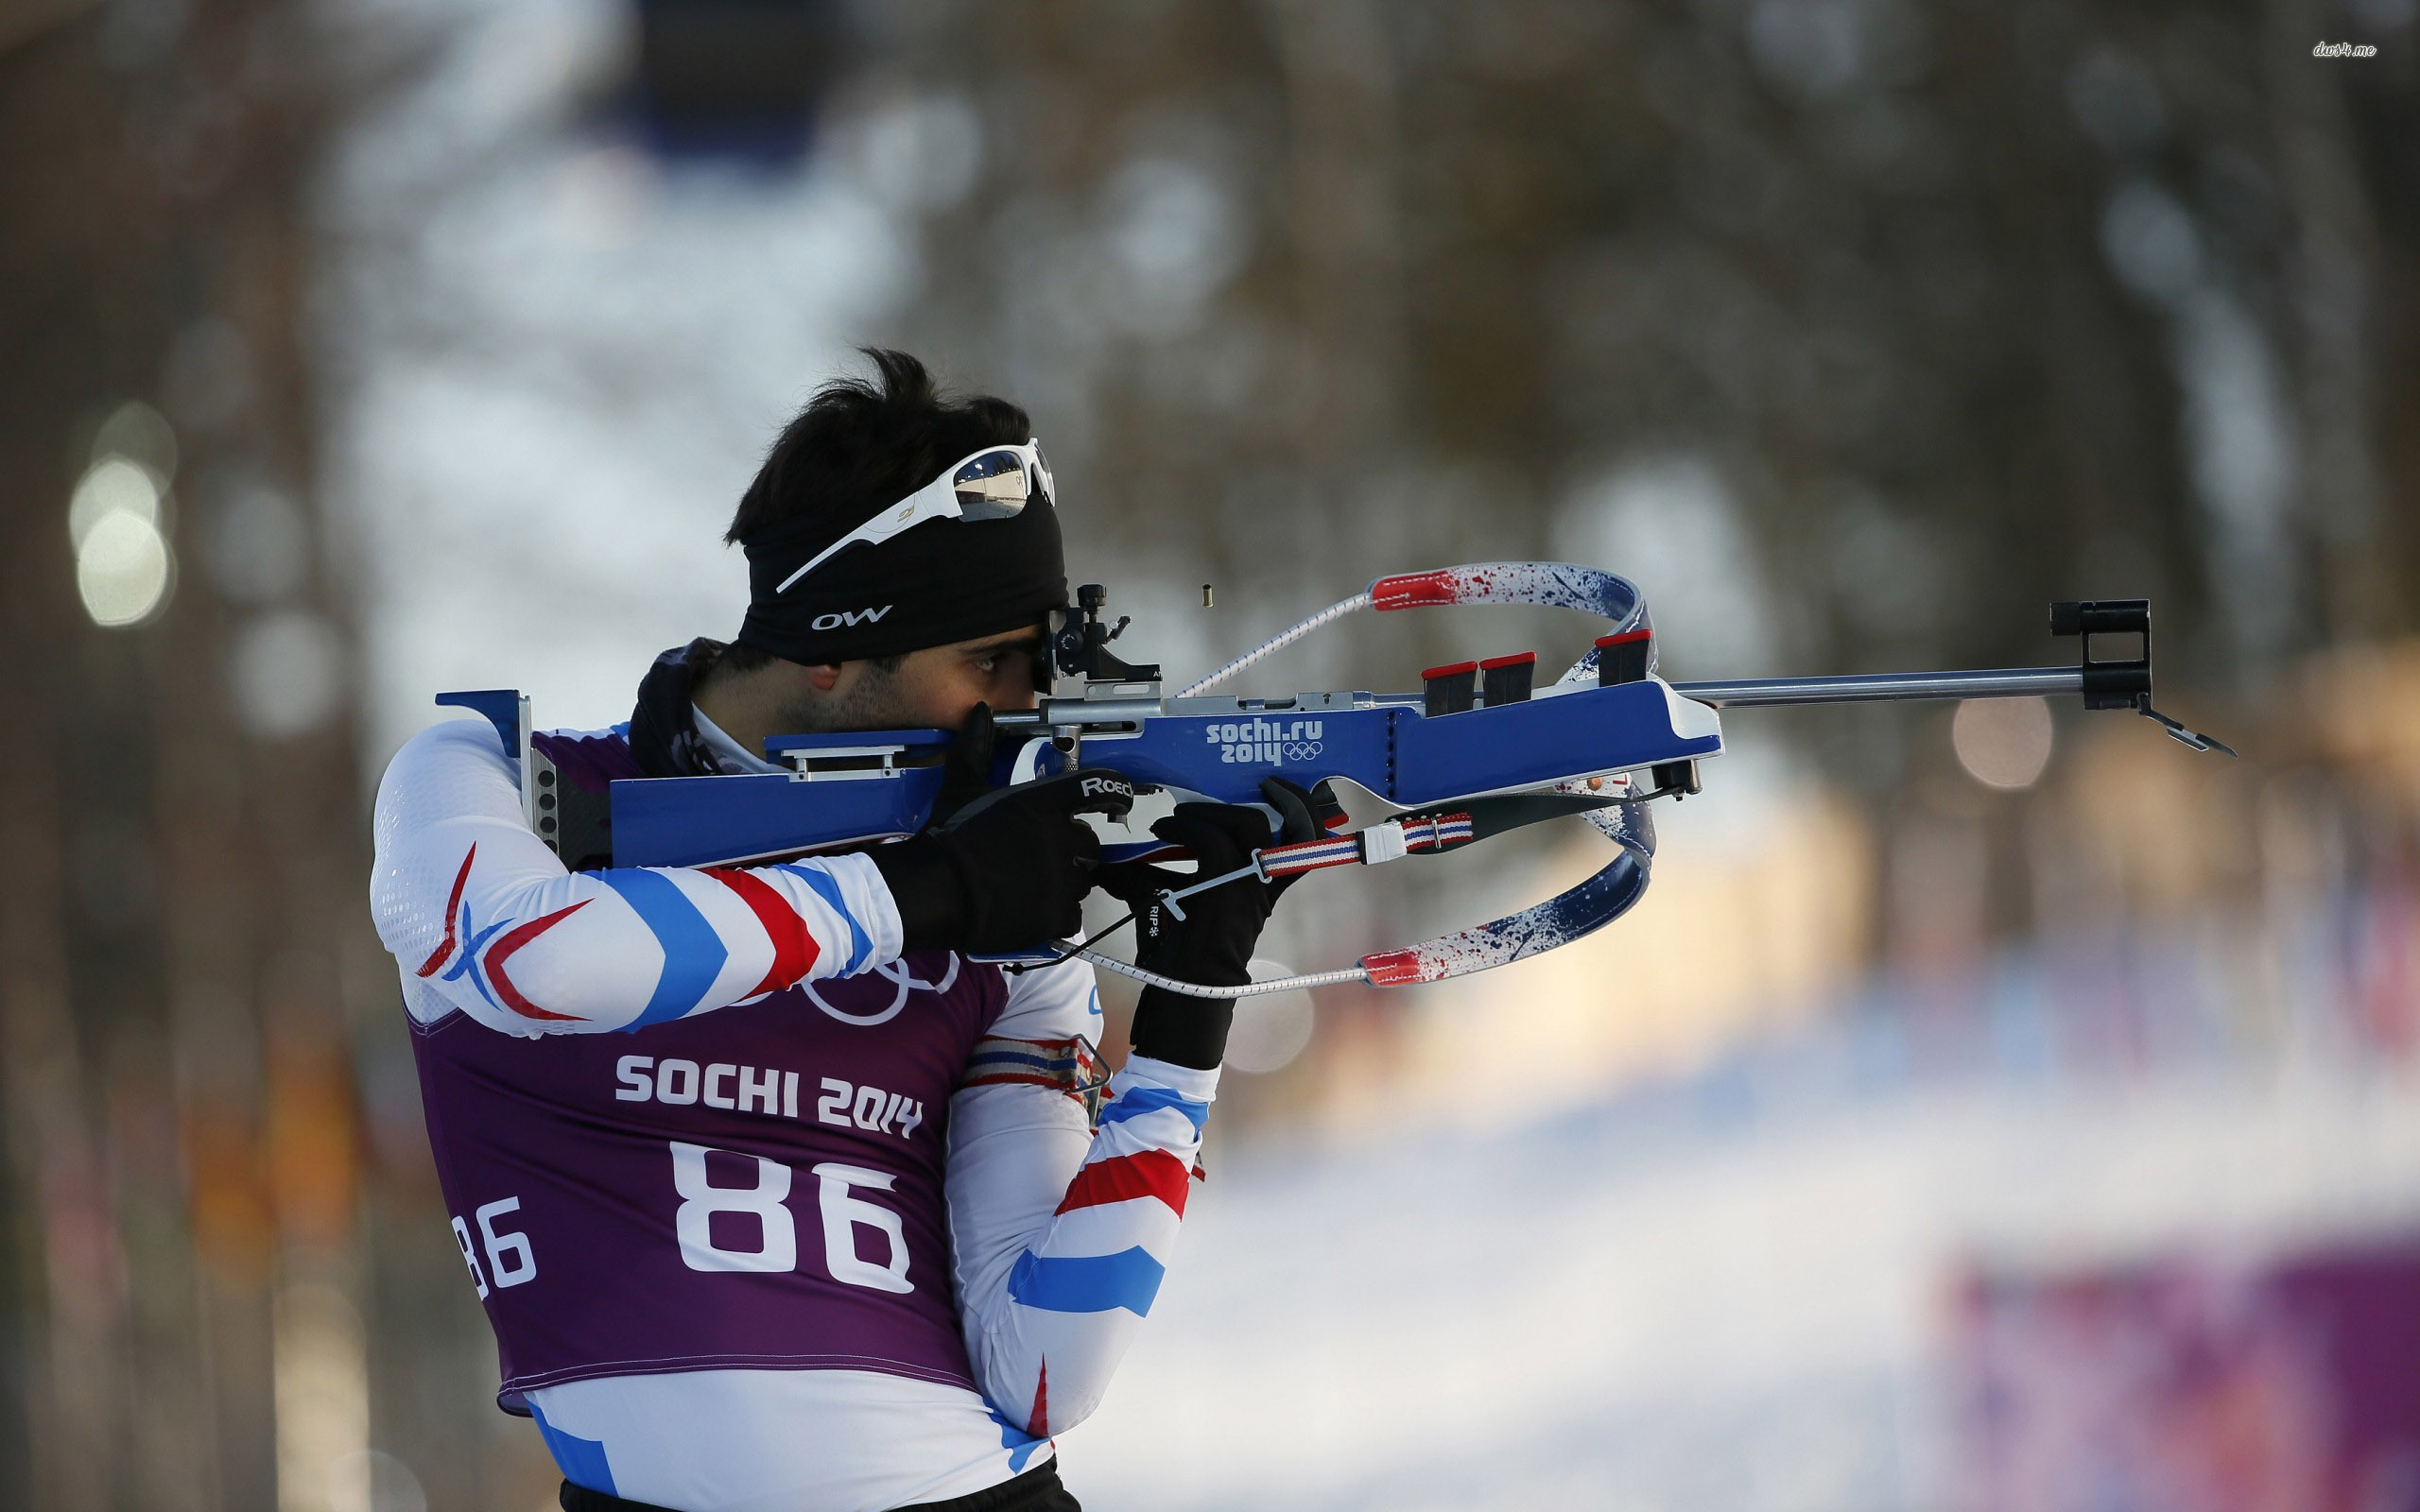 Biathlon wallpaper   Sport wallpapers   30855 2560x1600